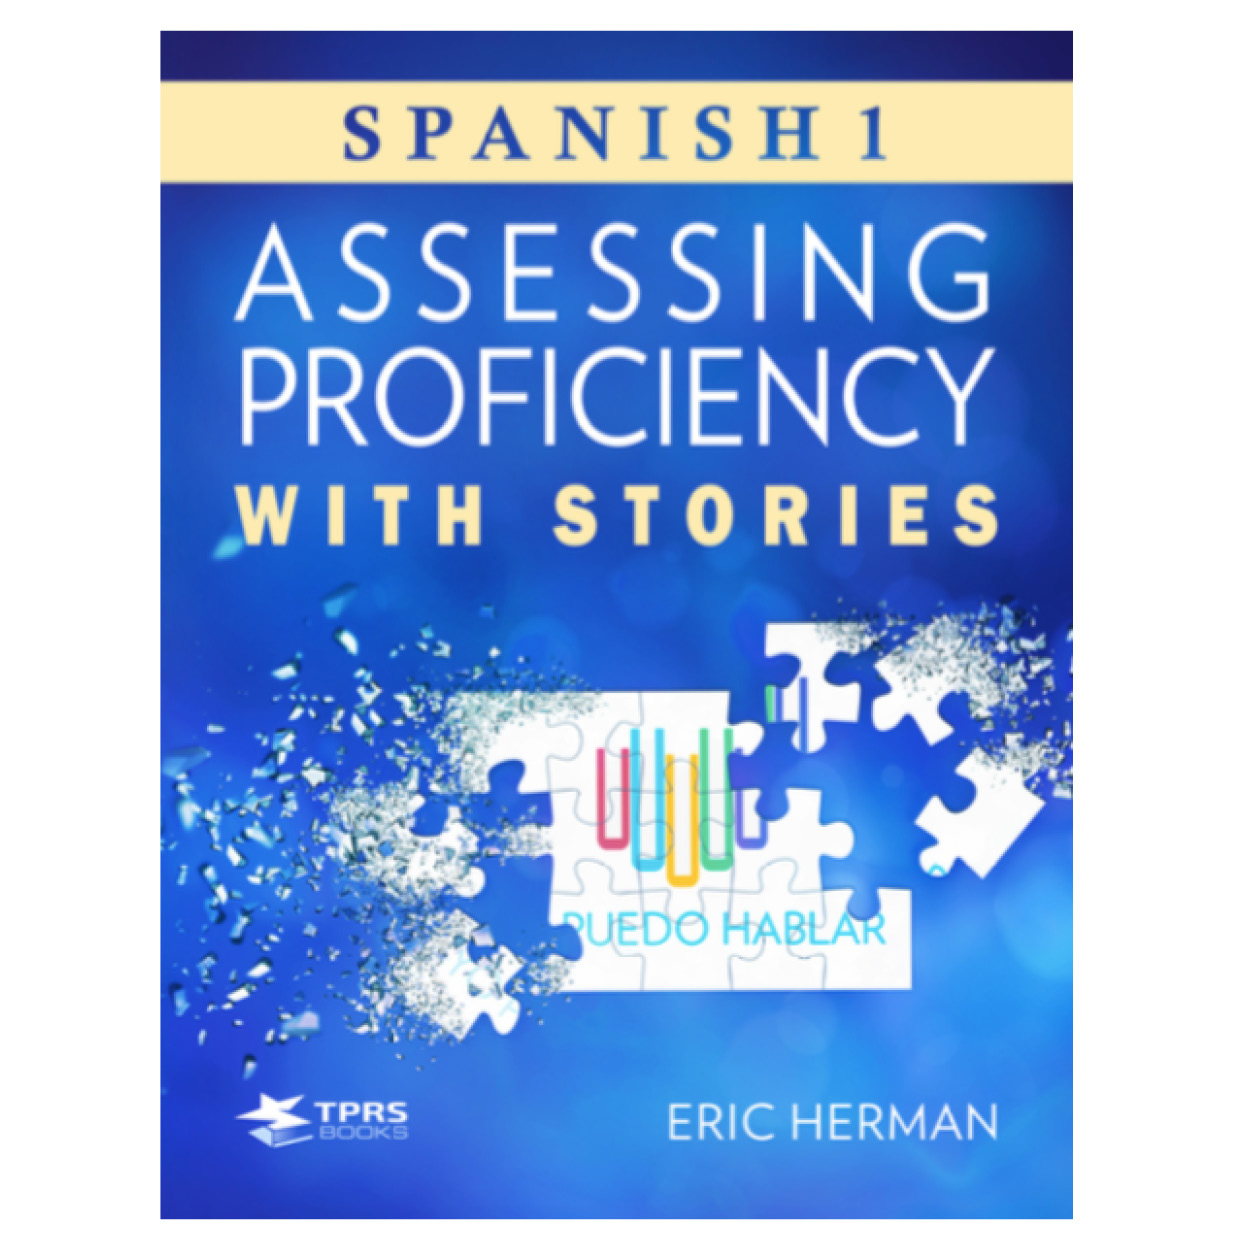 Assessing proficiency with Spanish stories